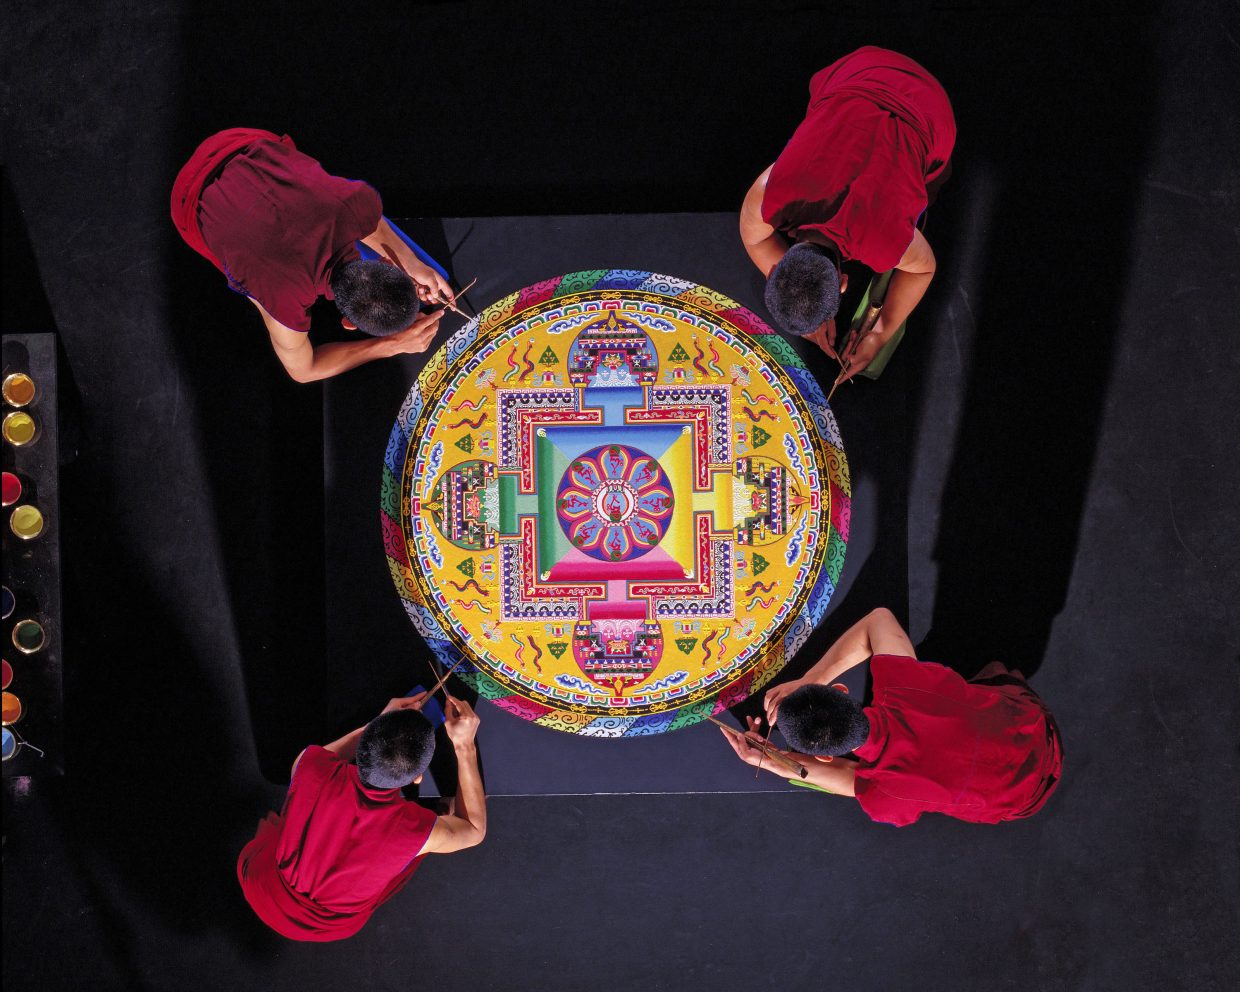 """For the first time since 2010, the Drepung Loseling monks will be back in Steamboat to create their mesmerizing mandala sand painting over the course of five days. This ancient art form also called dul-tson-kyil-khor, meaning """"Mandala of colored powders"""" is used as a tool for purifying and healing the environment and those who inhabit it. Each mandala the monks create in various communities they travel to is unique."""